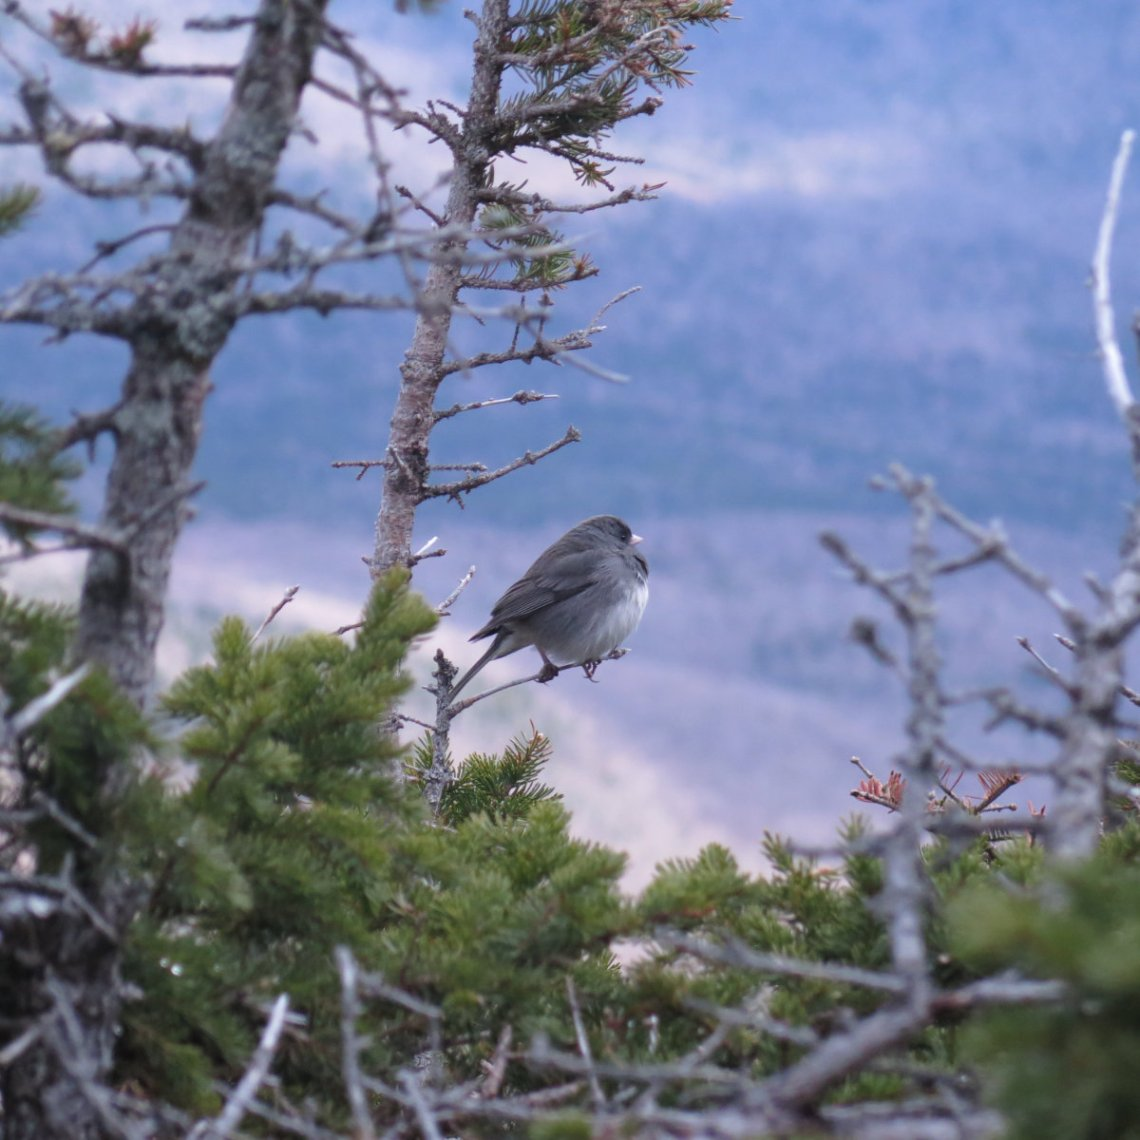 Wildcat-Slate-Junco-20190516